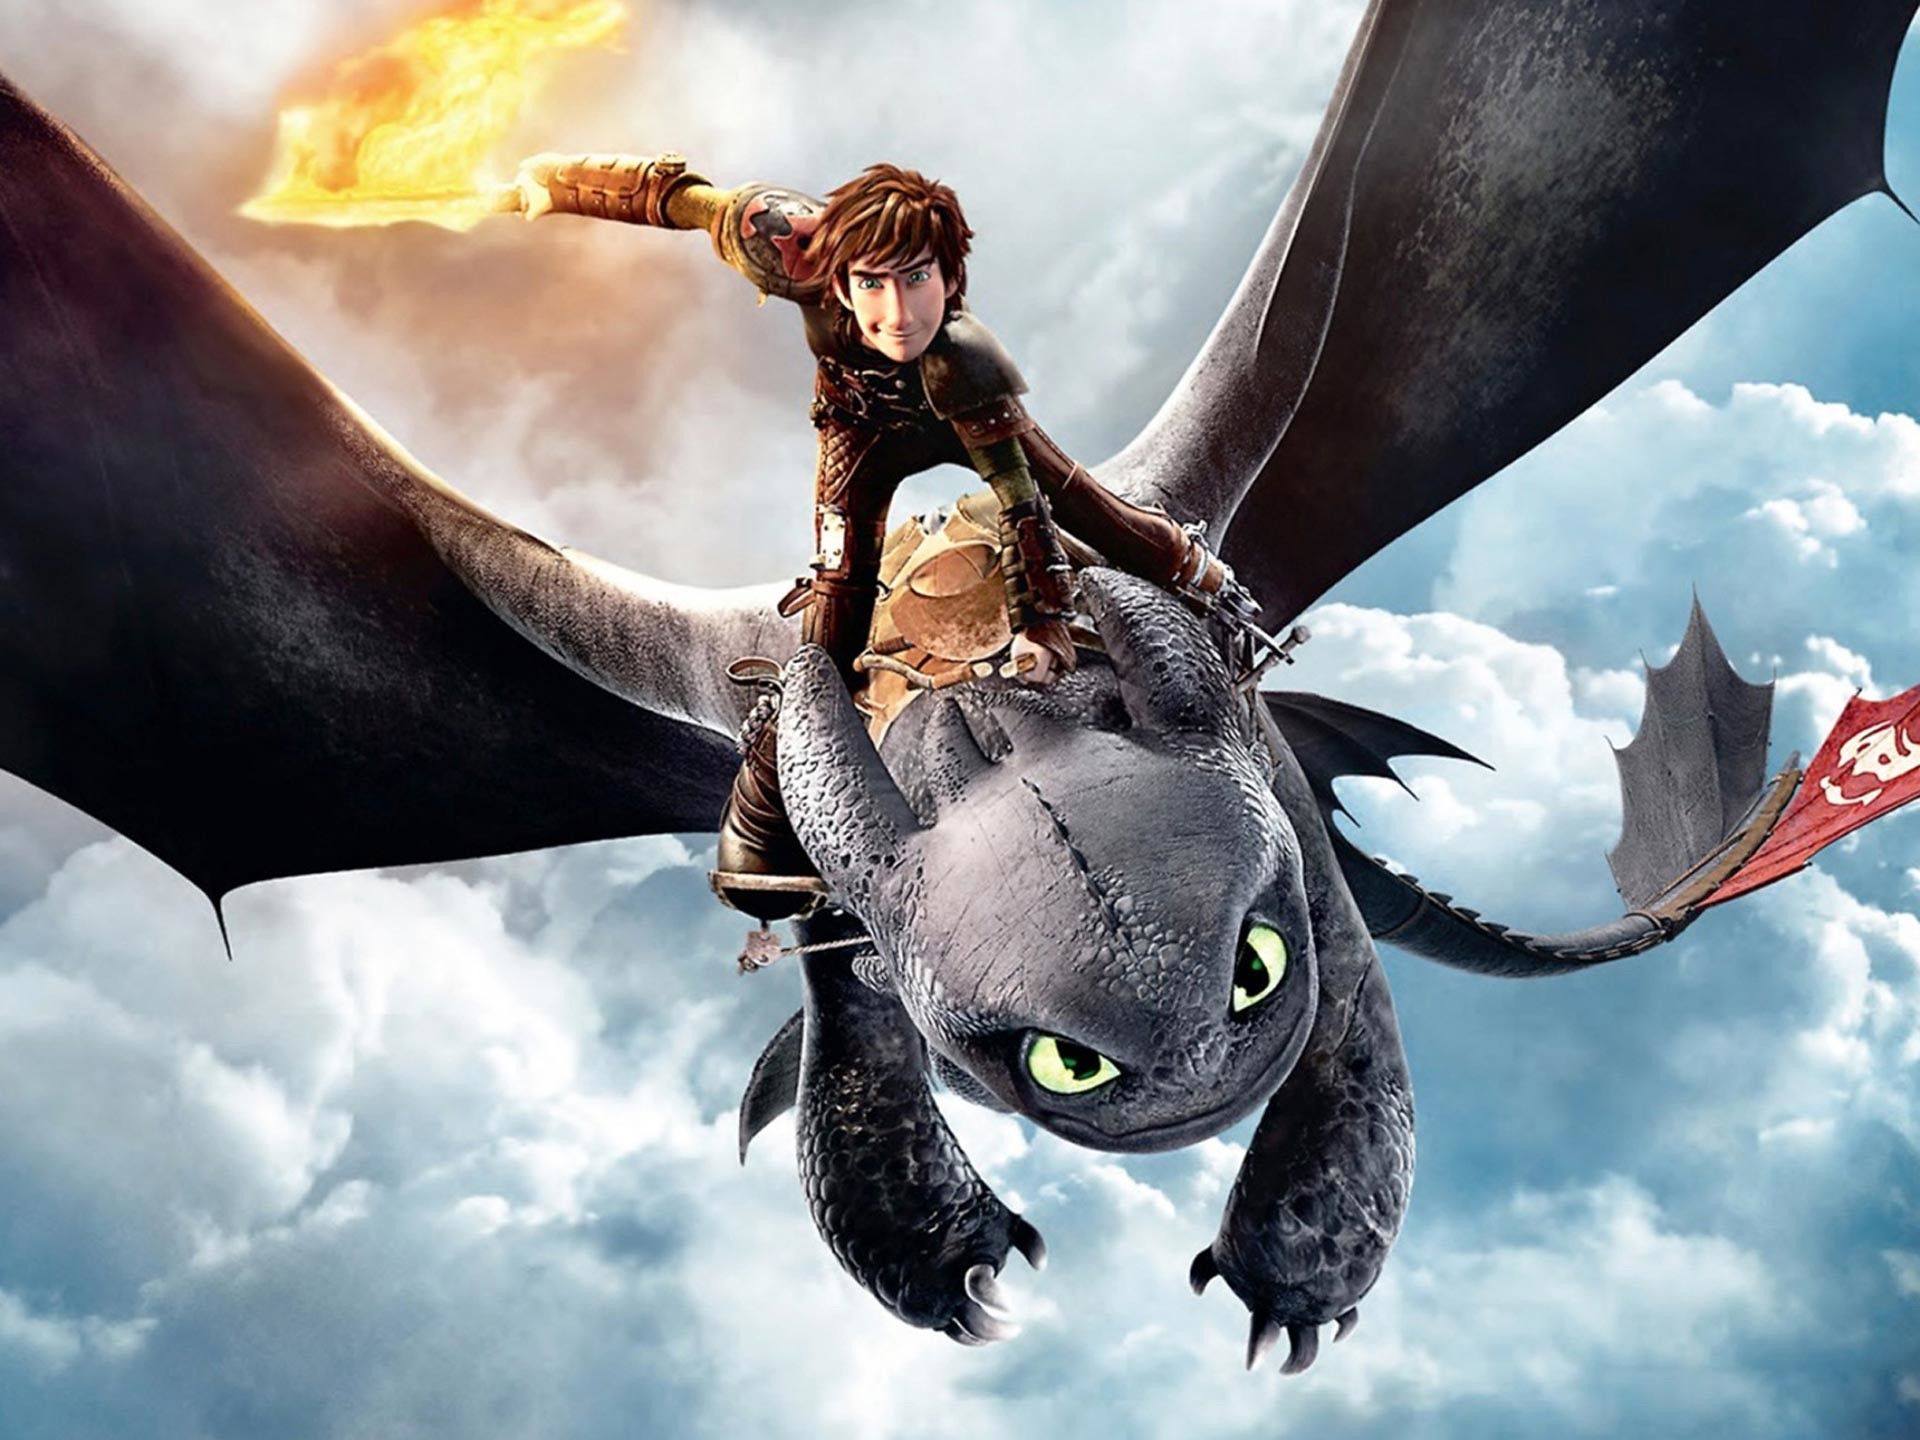 1920x1440 How To Train Your Dragon Wallpaper